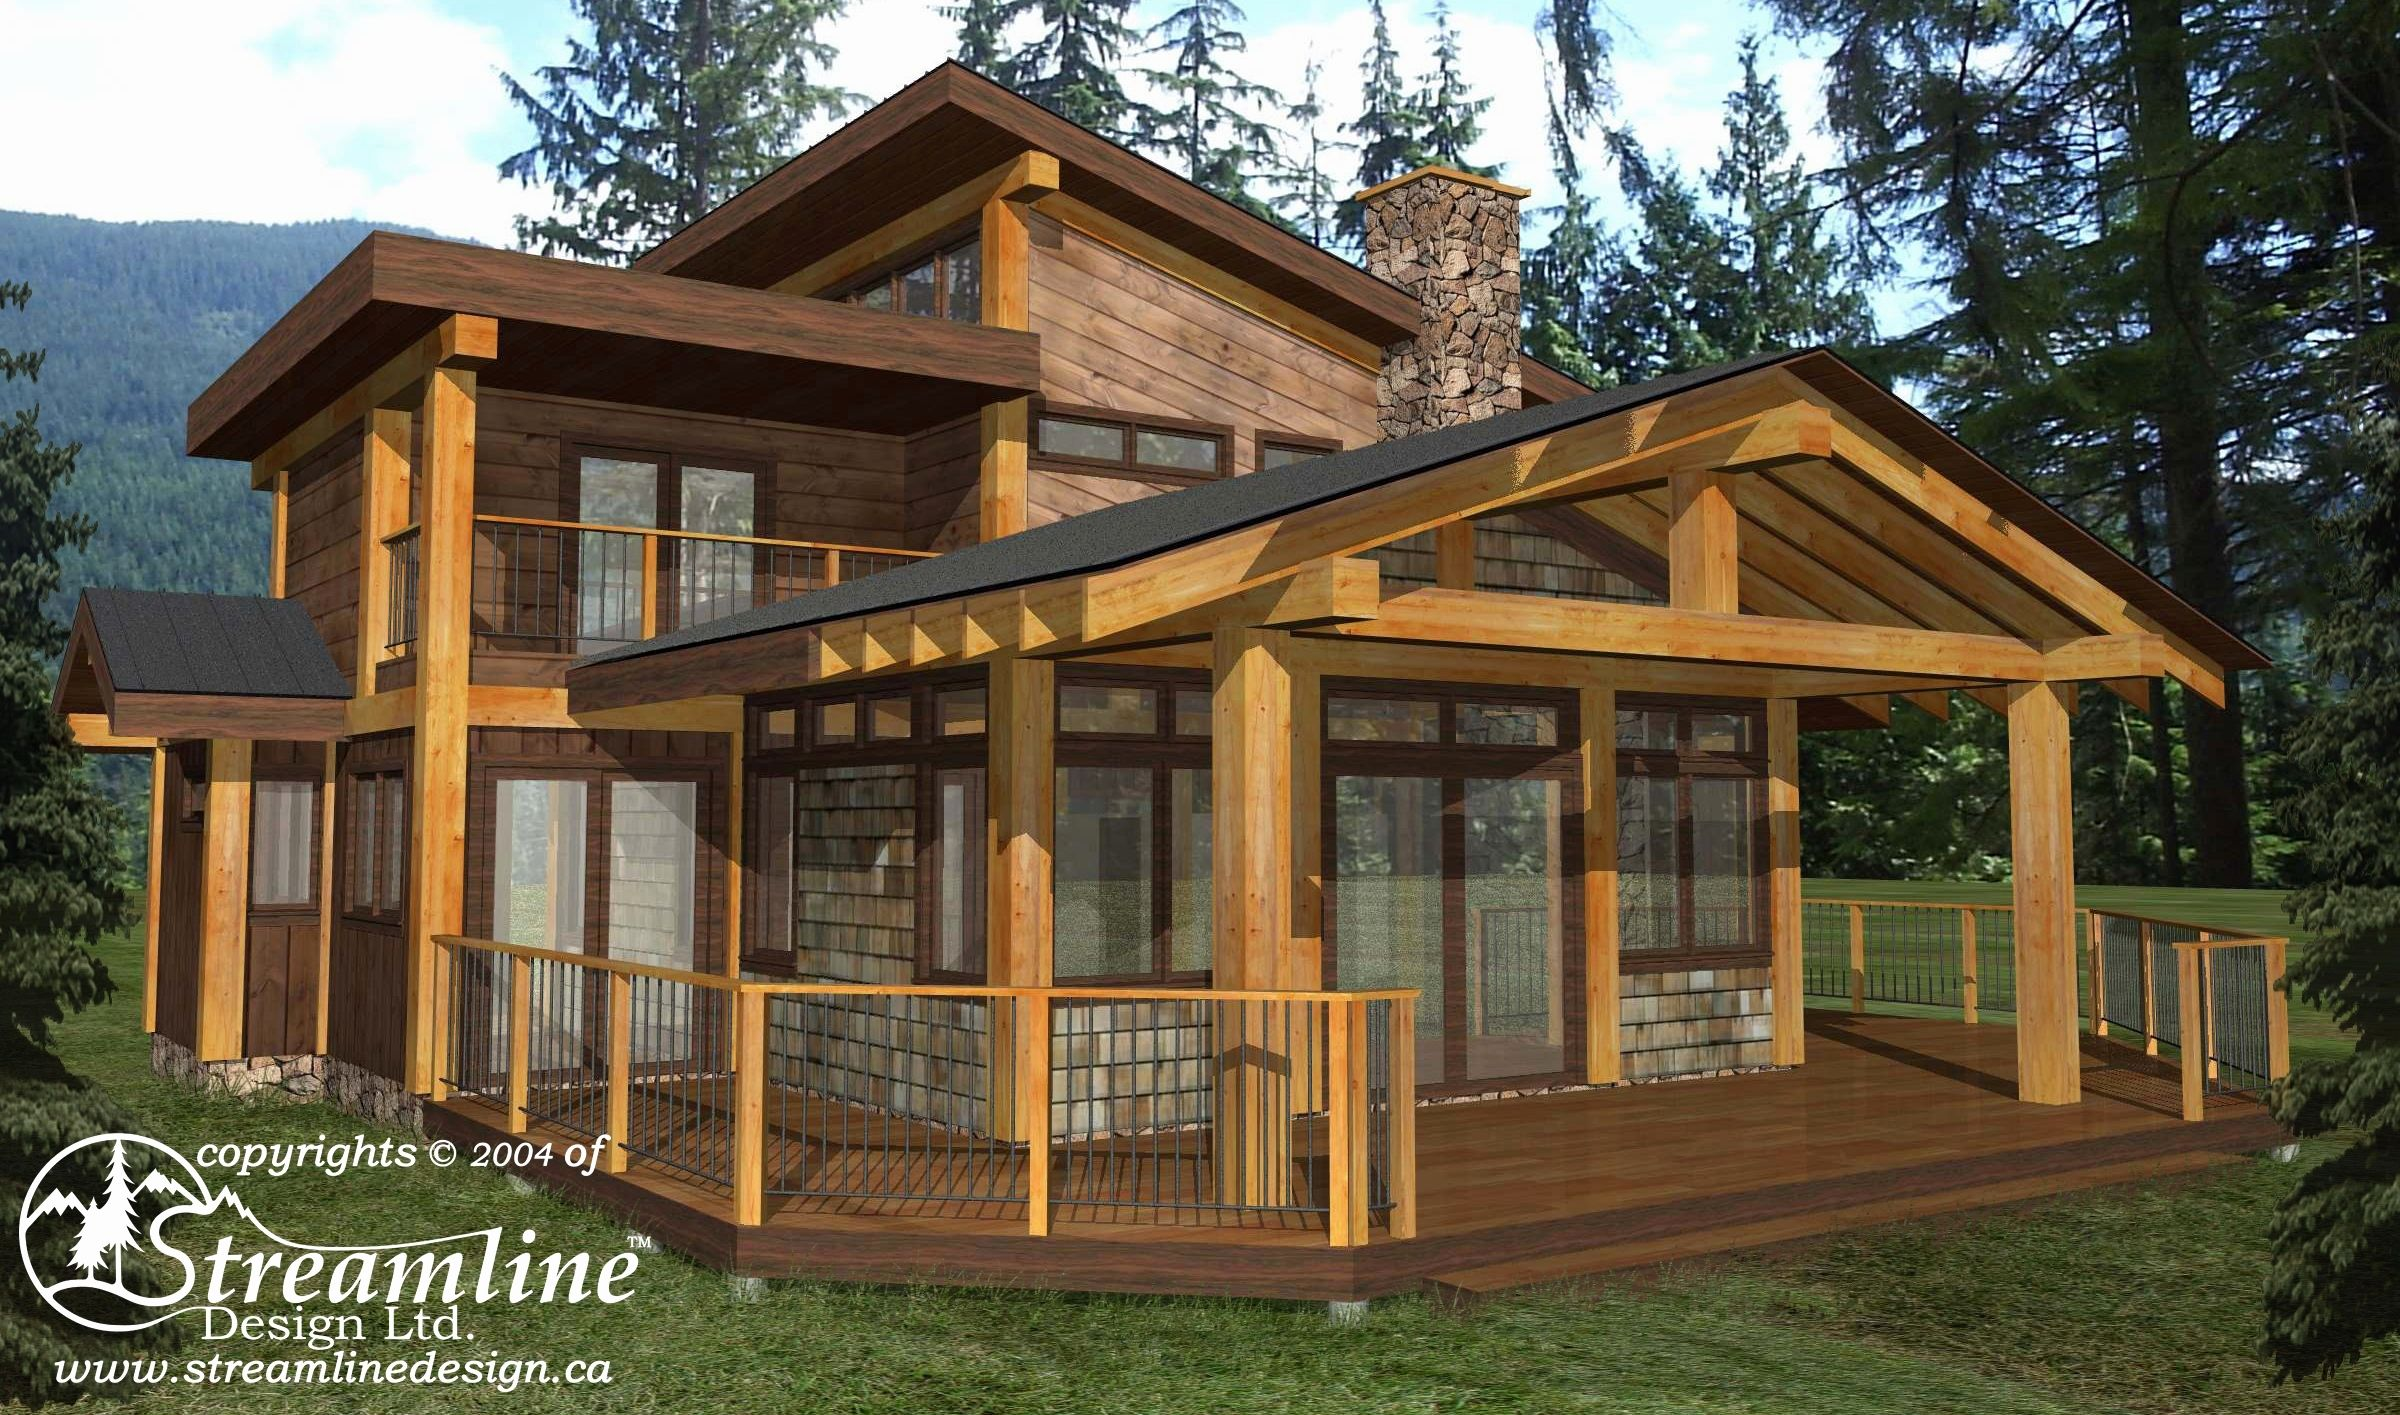 Pier And Beam House Plans Luxury Post And Beam House Plans Best Timber Frame Ideas And Plans Timber Frame Home Plans Timber Frame Plans A Frame House Plans